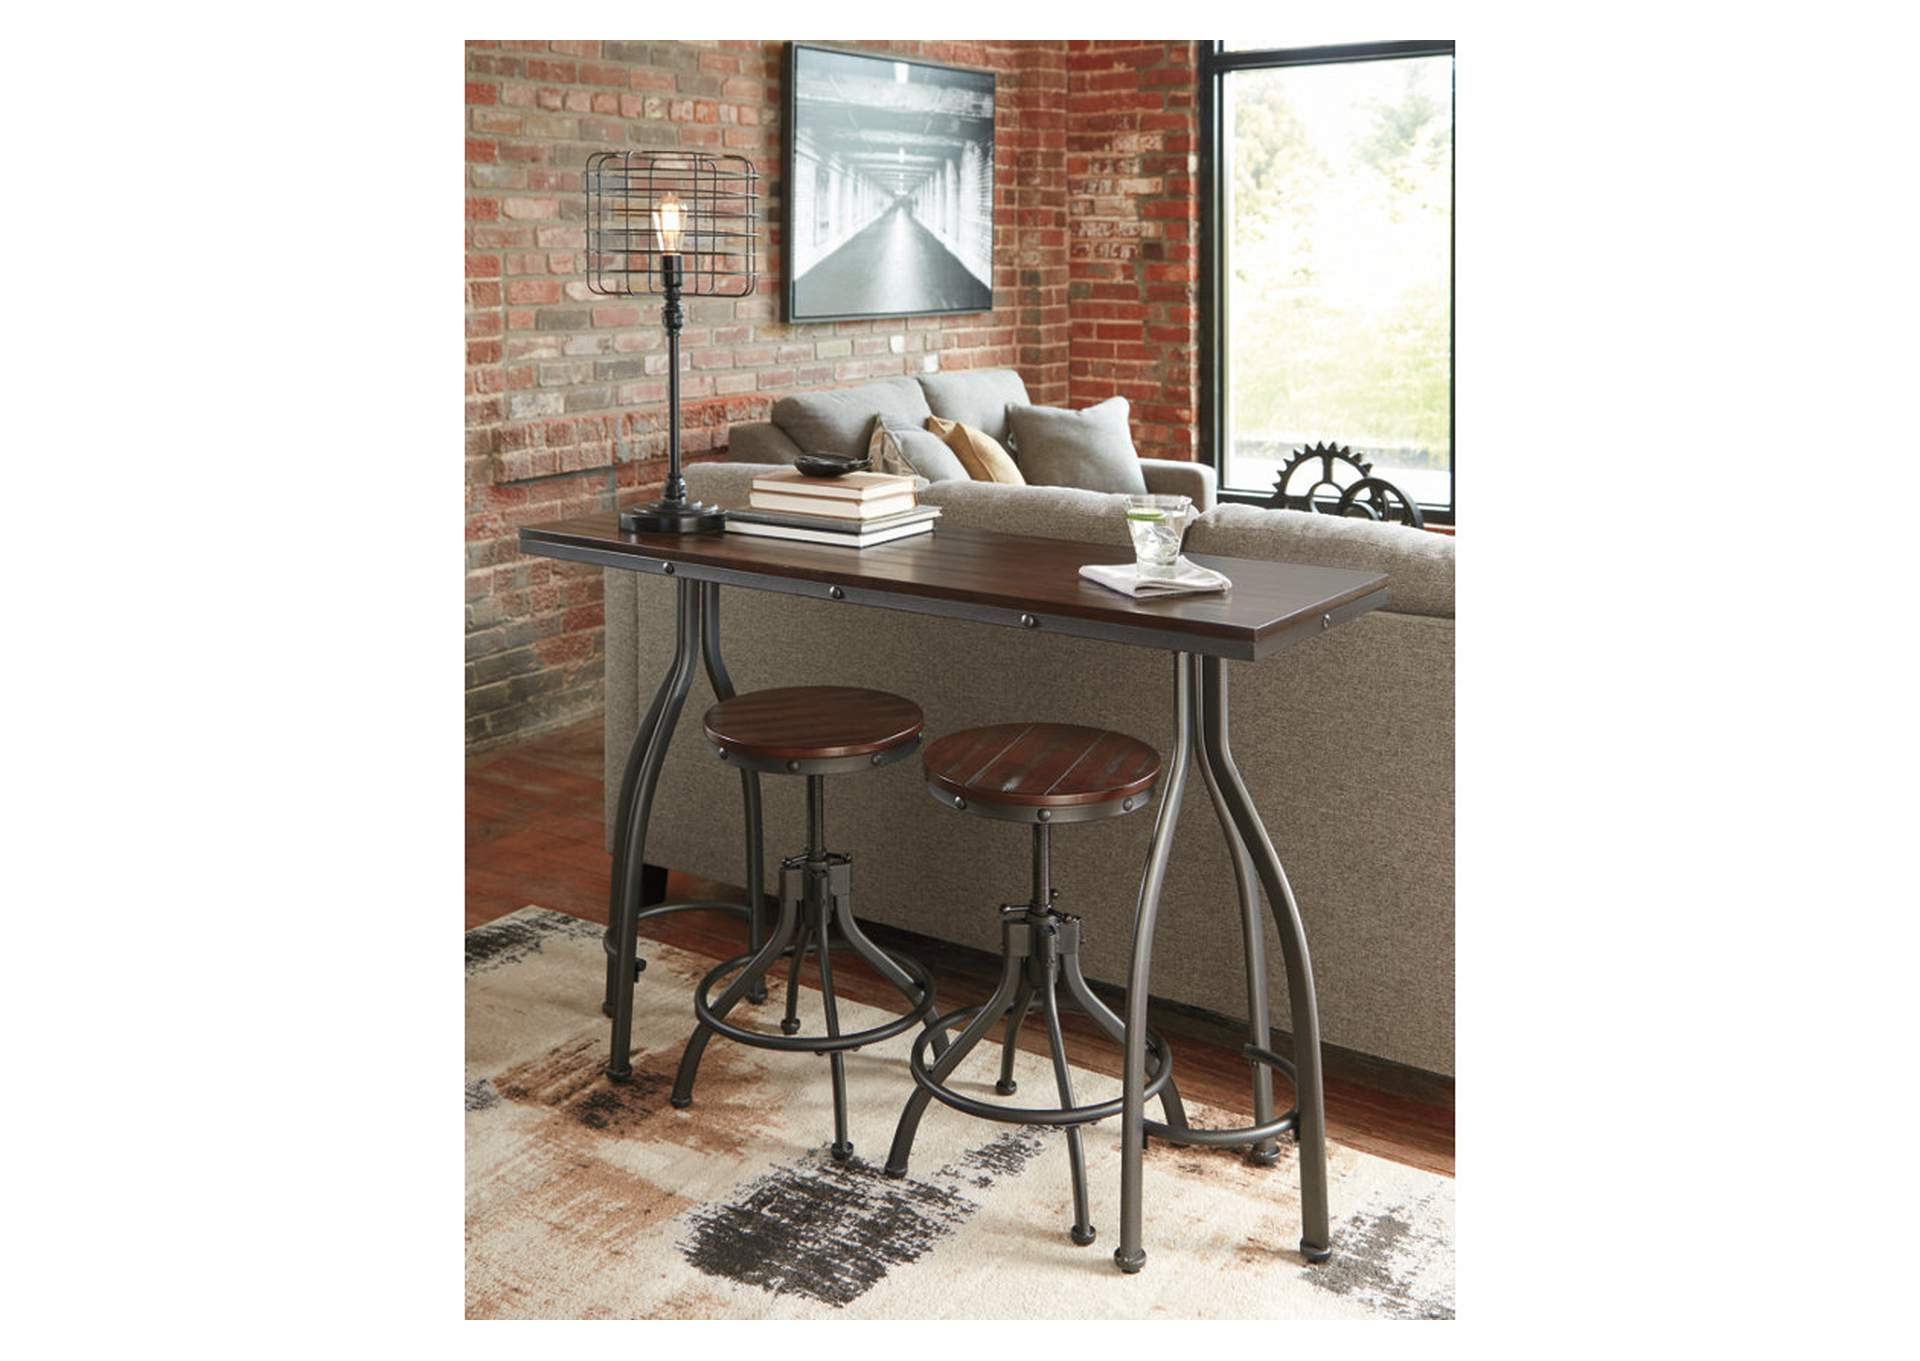 Odium Rustic Brown Rectangular Counter Table w/2 Stools,Direct To Consumer Express